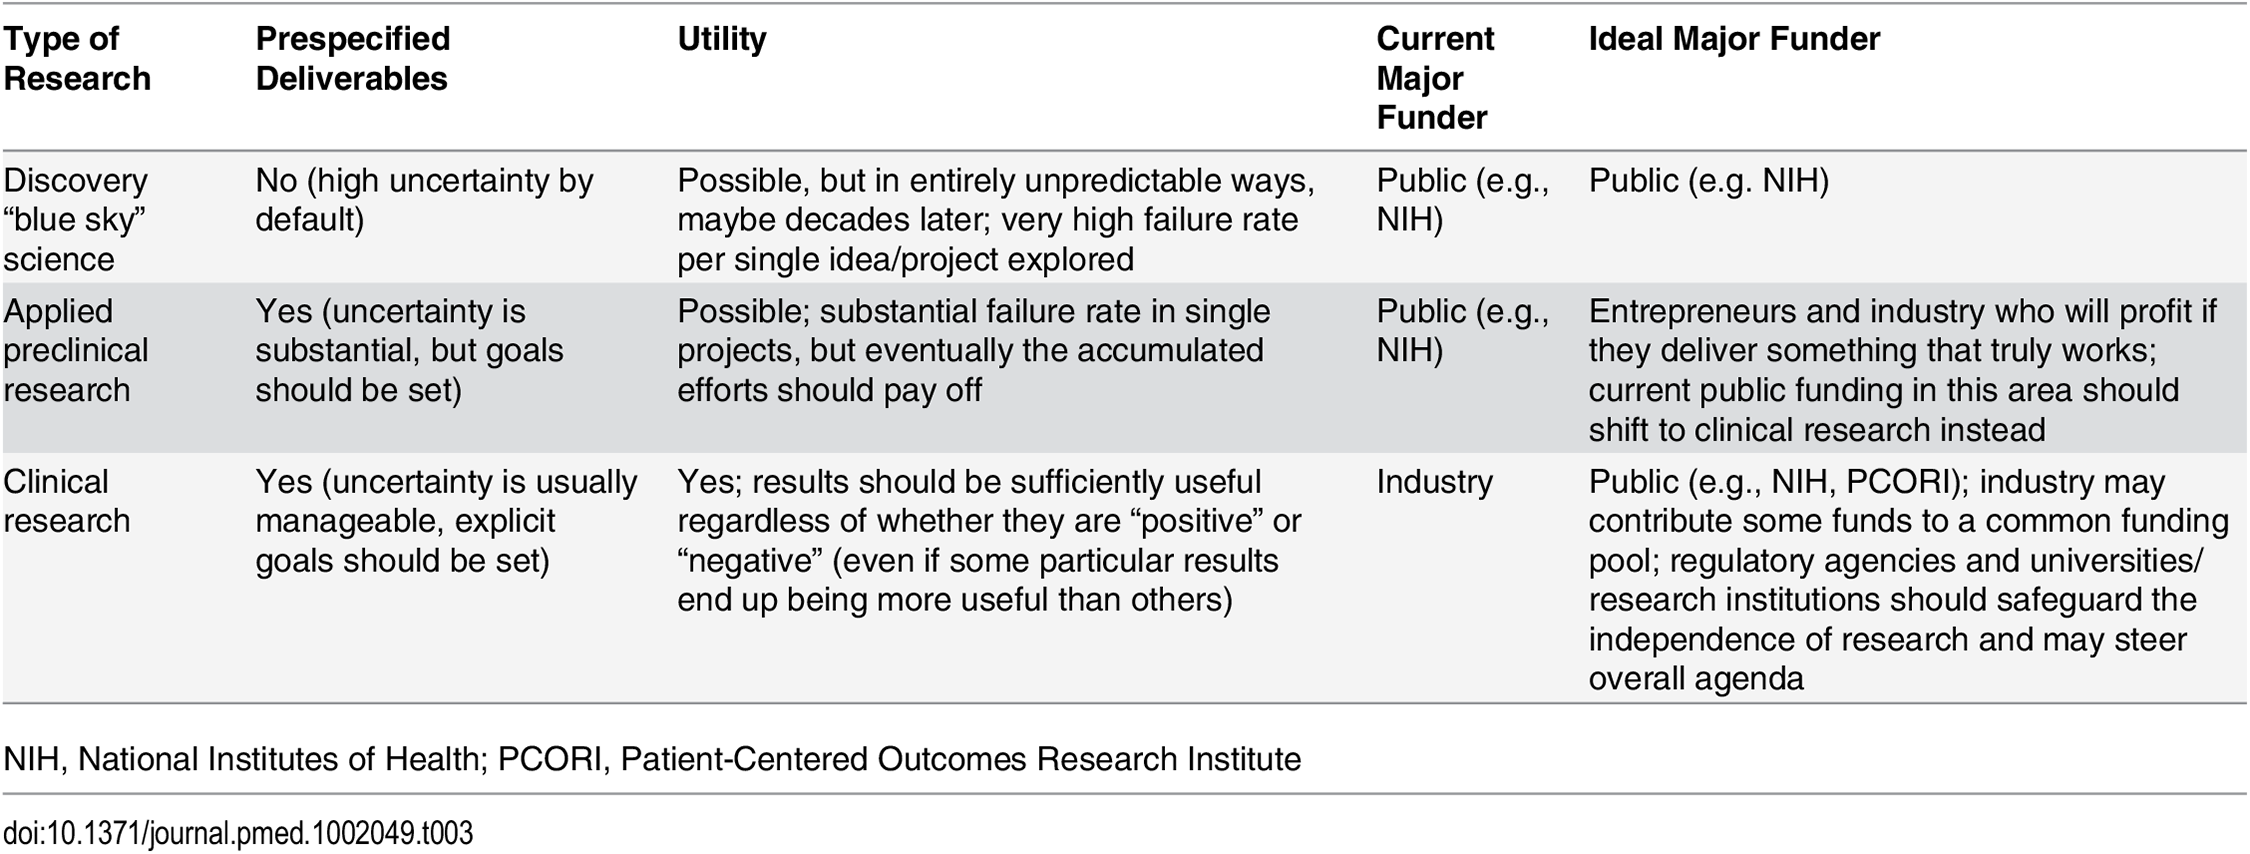 Funding of different types of research: Prespecified deliverables, utility, current funders, and ideal funders.